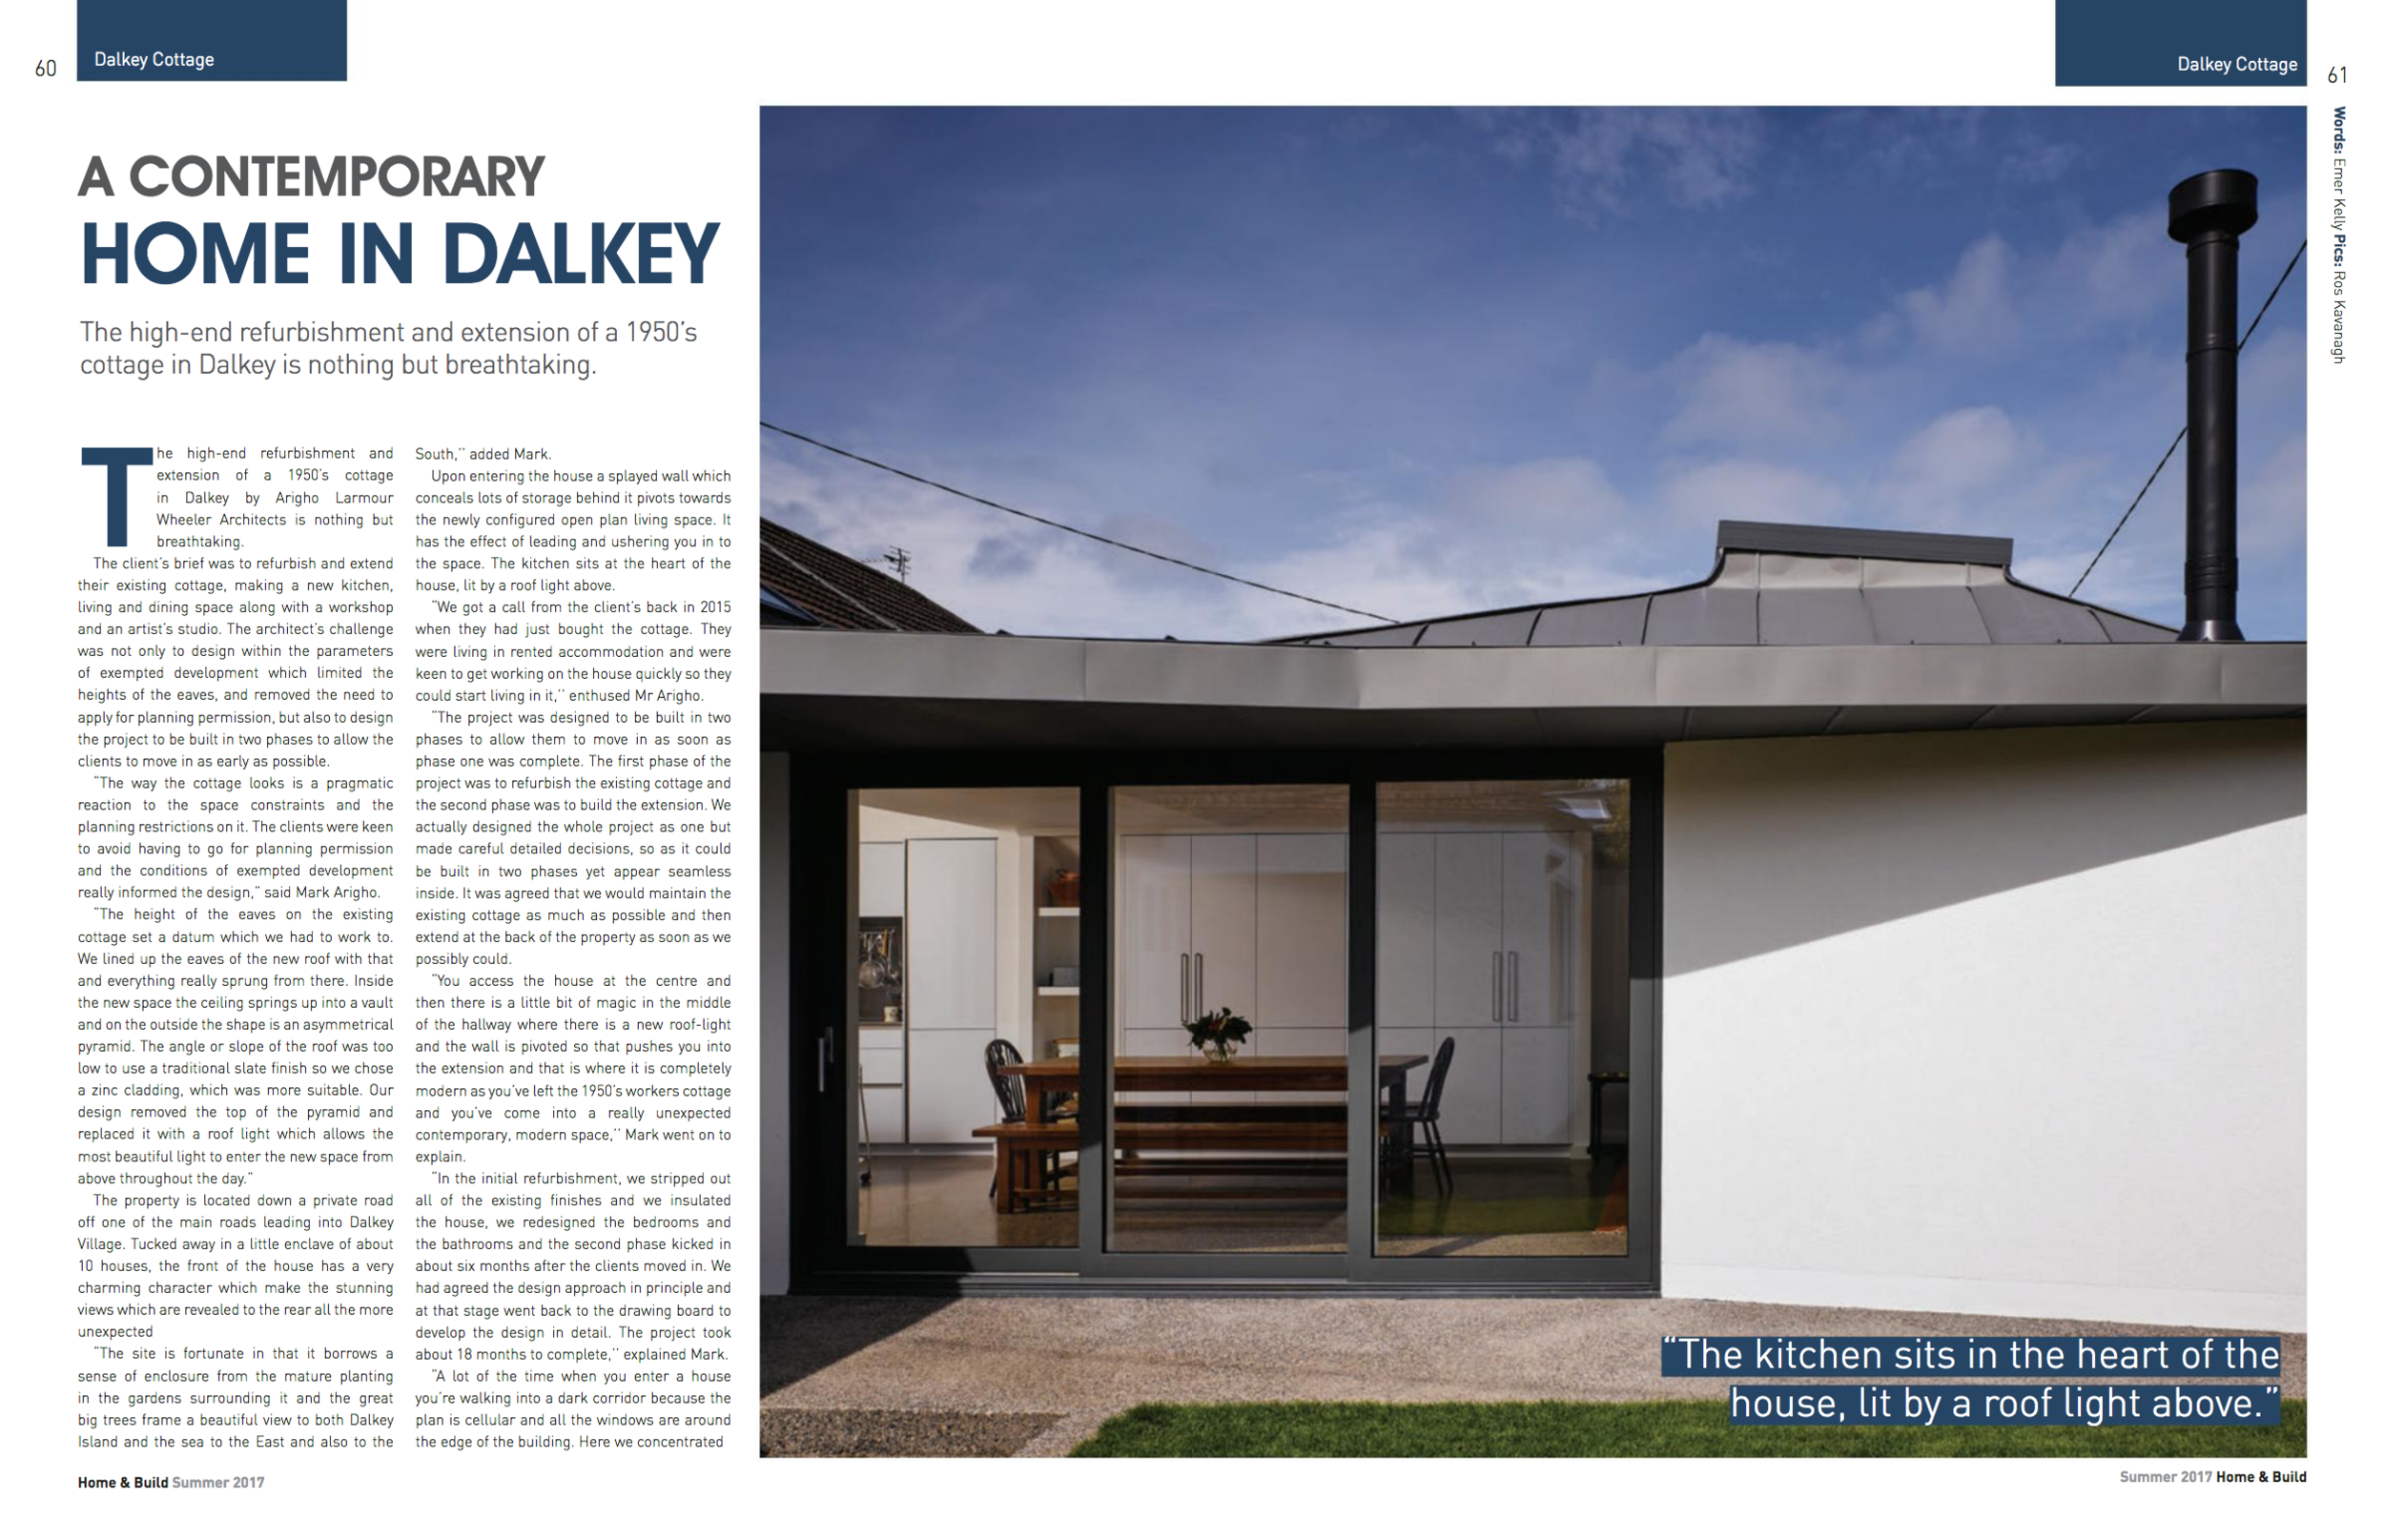 Our recenlty completed Dalkey Cottage project features in this months Home and Build Magazine